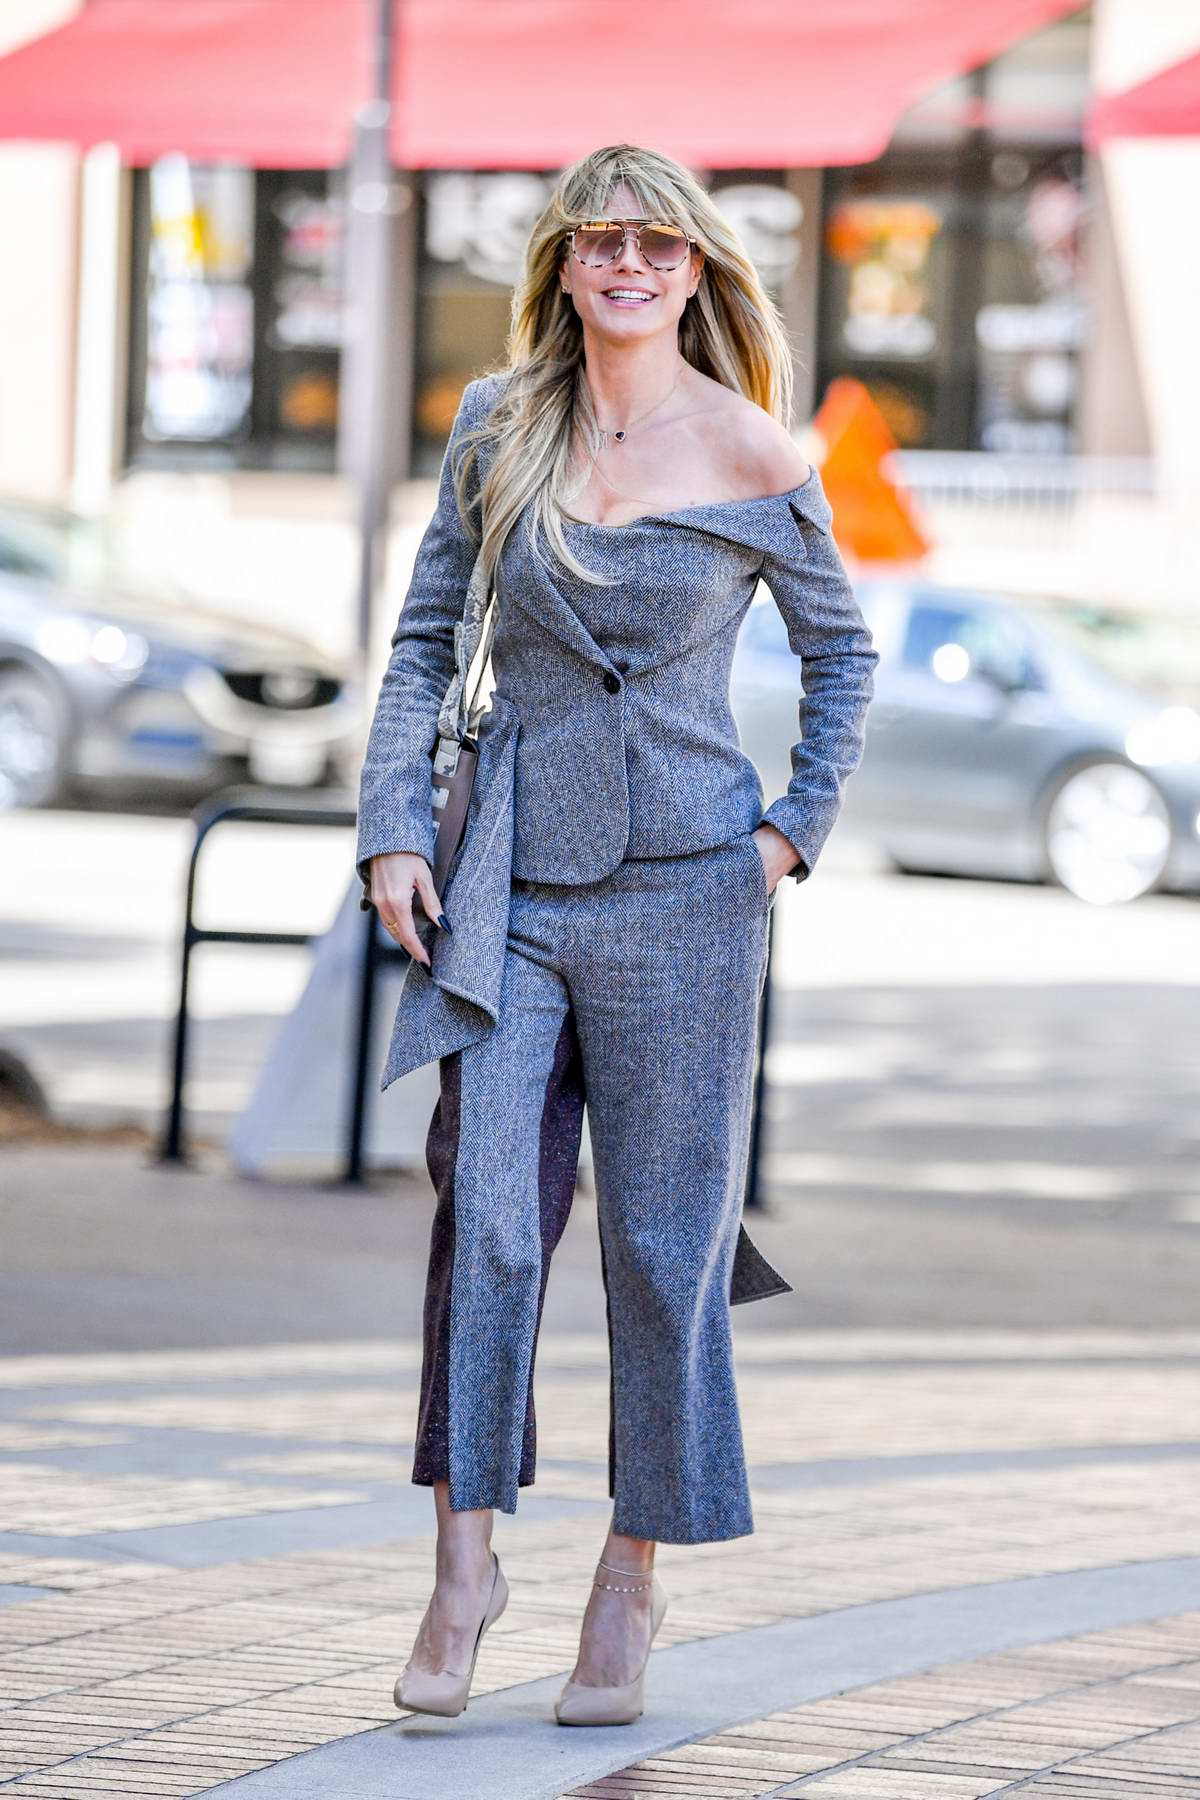 Heidi Klum looks stylish in a grey outfit as she arrives at the 'Americas Got Talent' in Pasadena, California